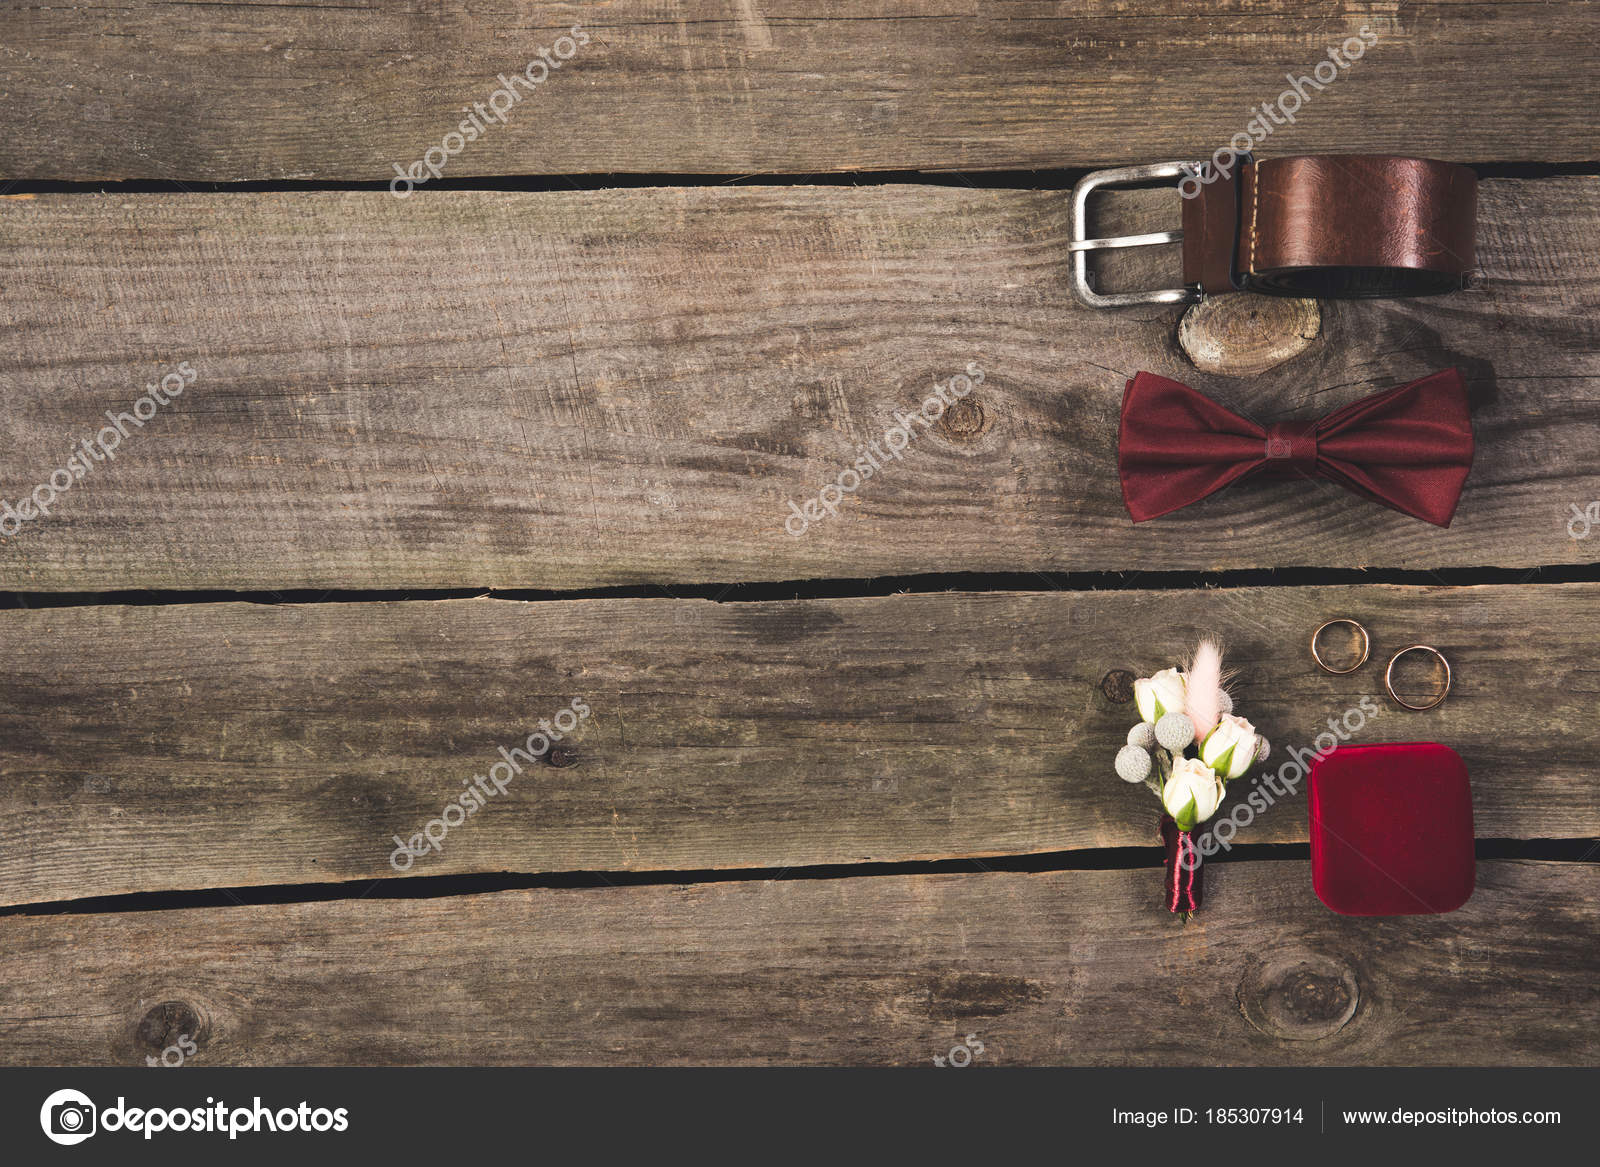 Flat lay arranged grooms accessories wedding rings wooden tabletop flat lay arranged grooms accessories wedding rings wooden tabletop stock photo junglespirit Image collections